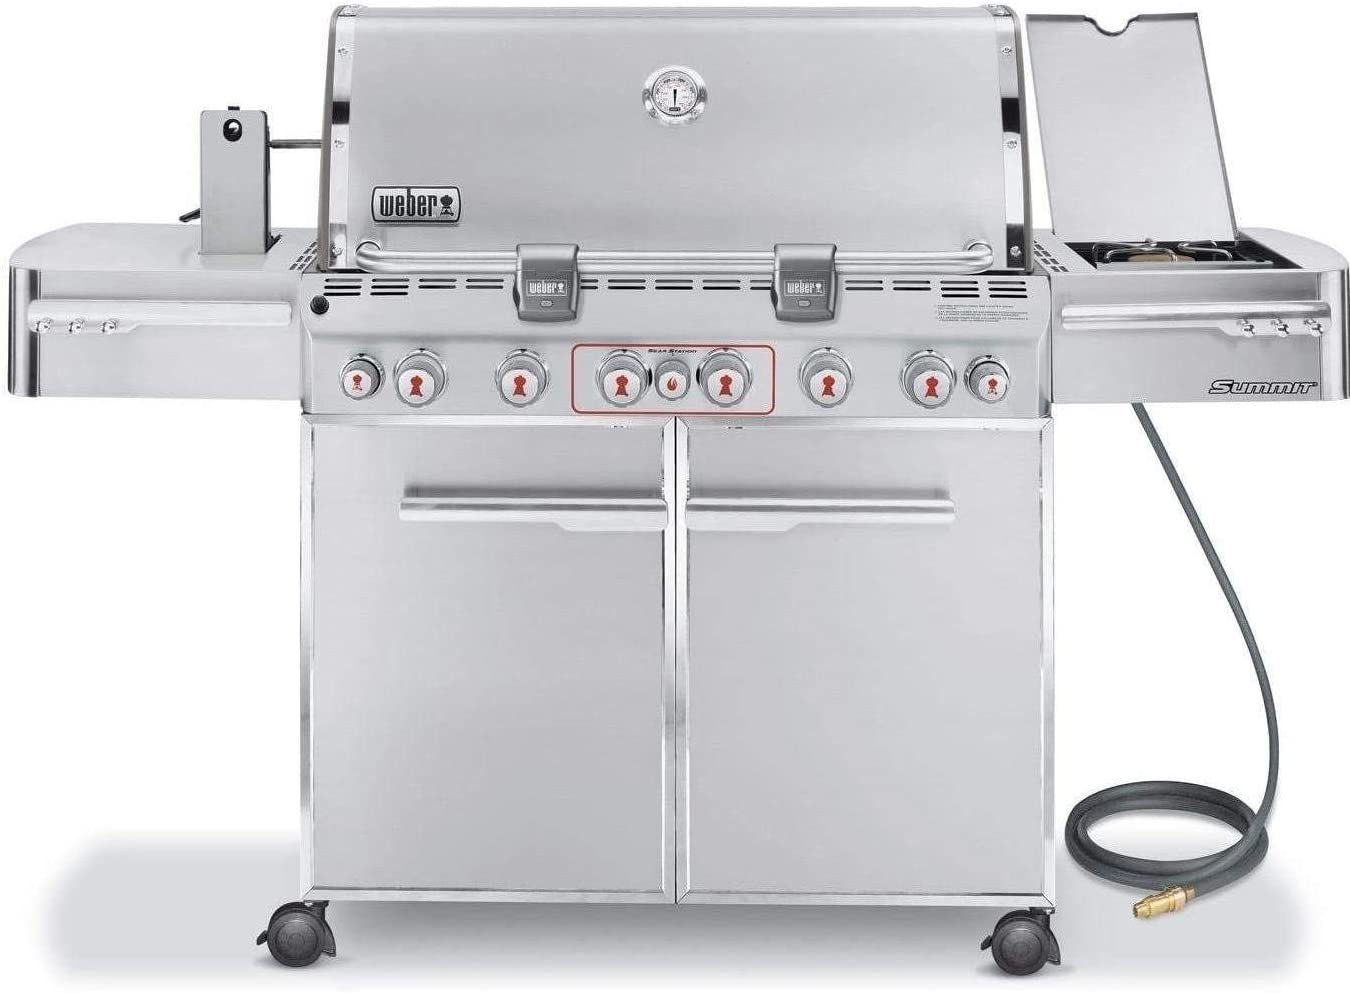 Weber 7470001 Summit S-670 6-Burner Natural Gas Grill, Stainless Steel